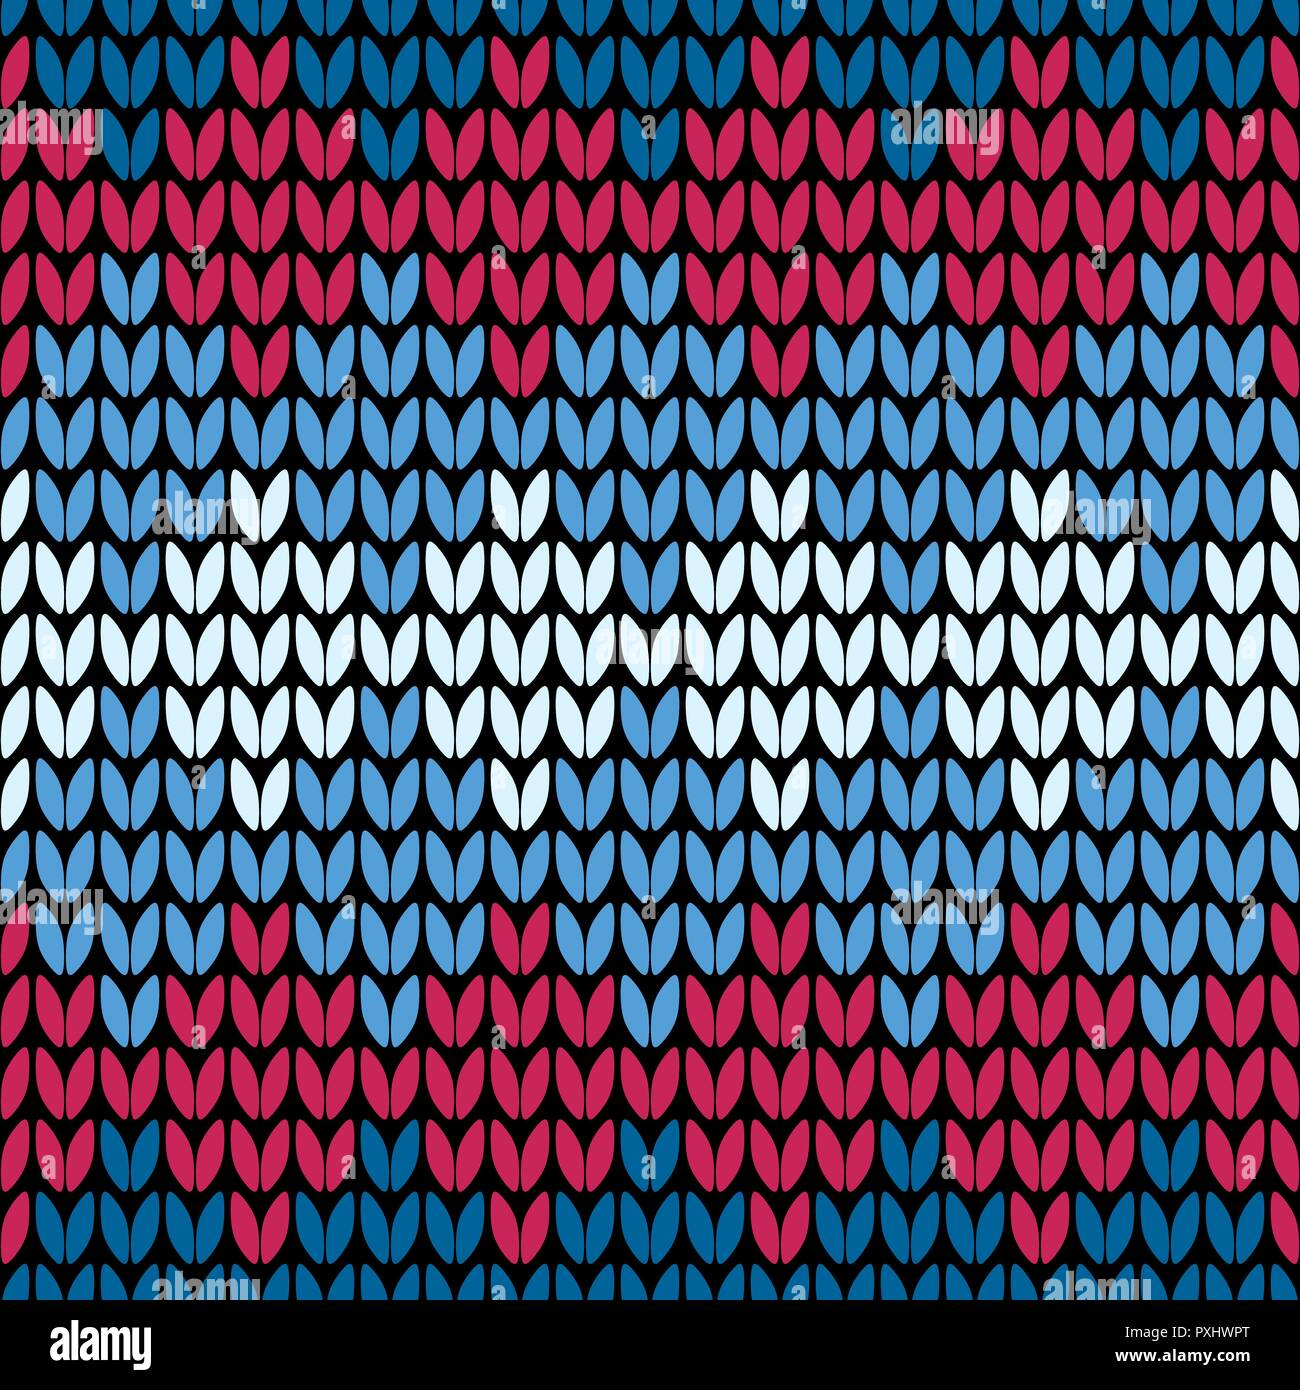 Abstract red and blue seamless knitting pattern wallpaper - Stock Vector